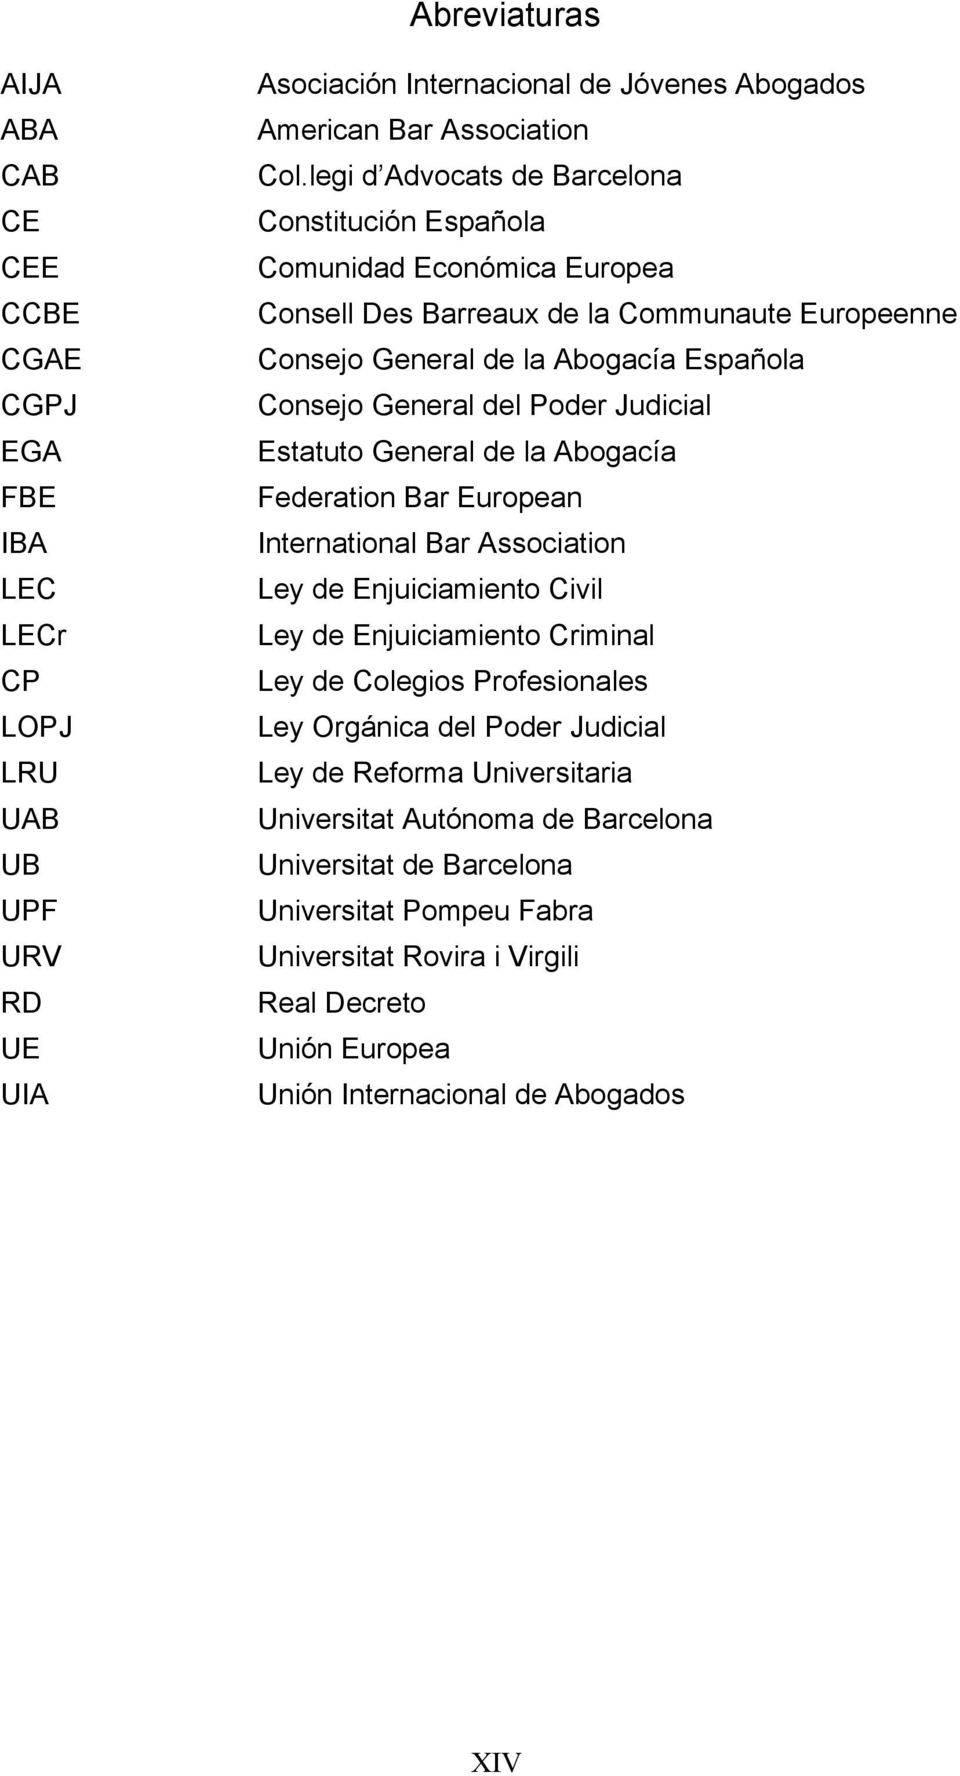 Judicial Estatuto General de la Abogacía Federation Bar European International Bar Association Ley de Enjuiciamiento Civil Ley de Enjuiciamiento Criminal Ley de Colegios Profesionales Ley Orgánica